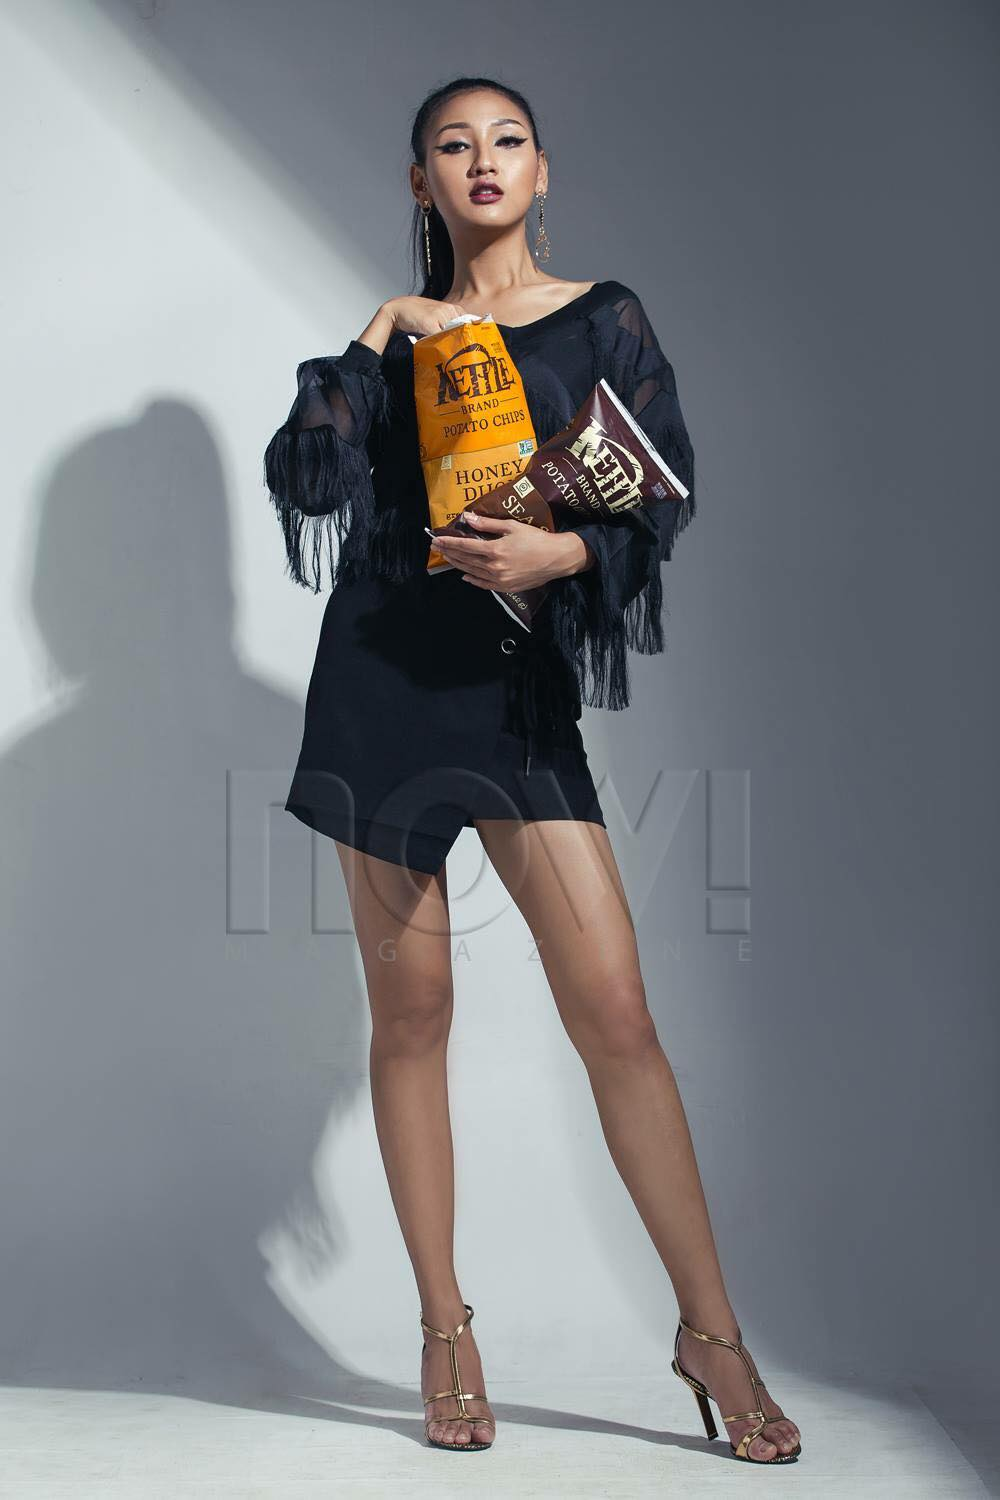 M Seng Lu - Now Magazine Cover Photoshoot and Interview